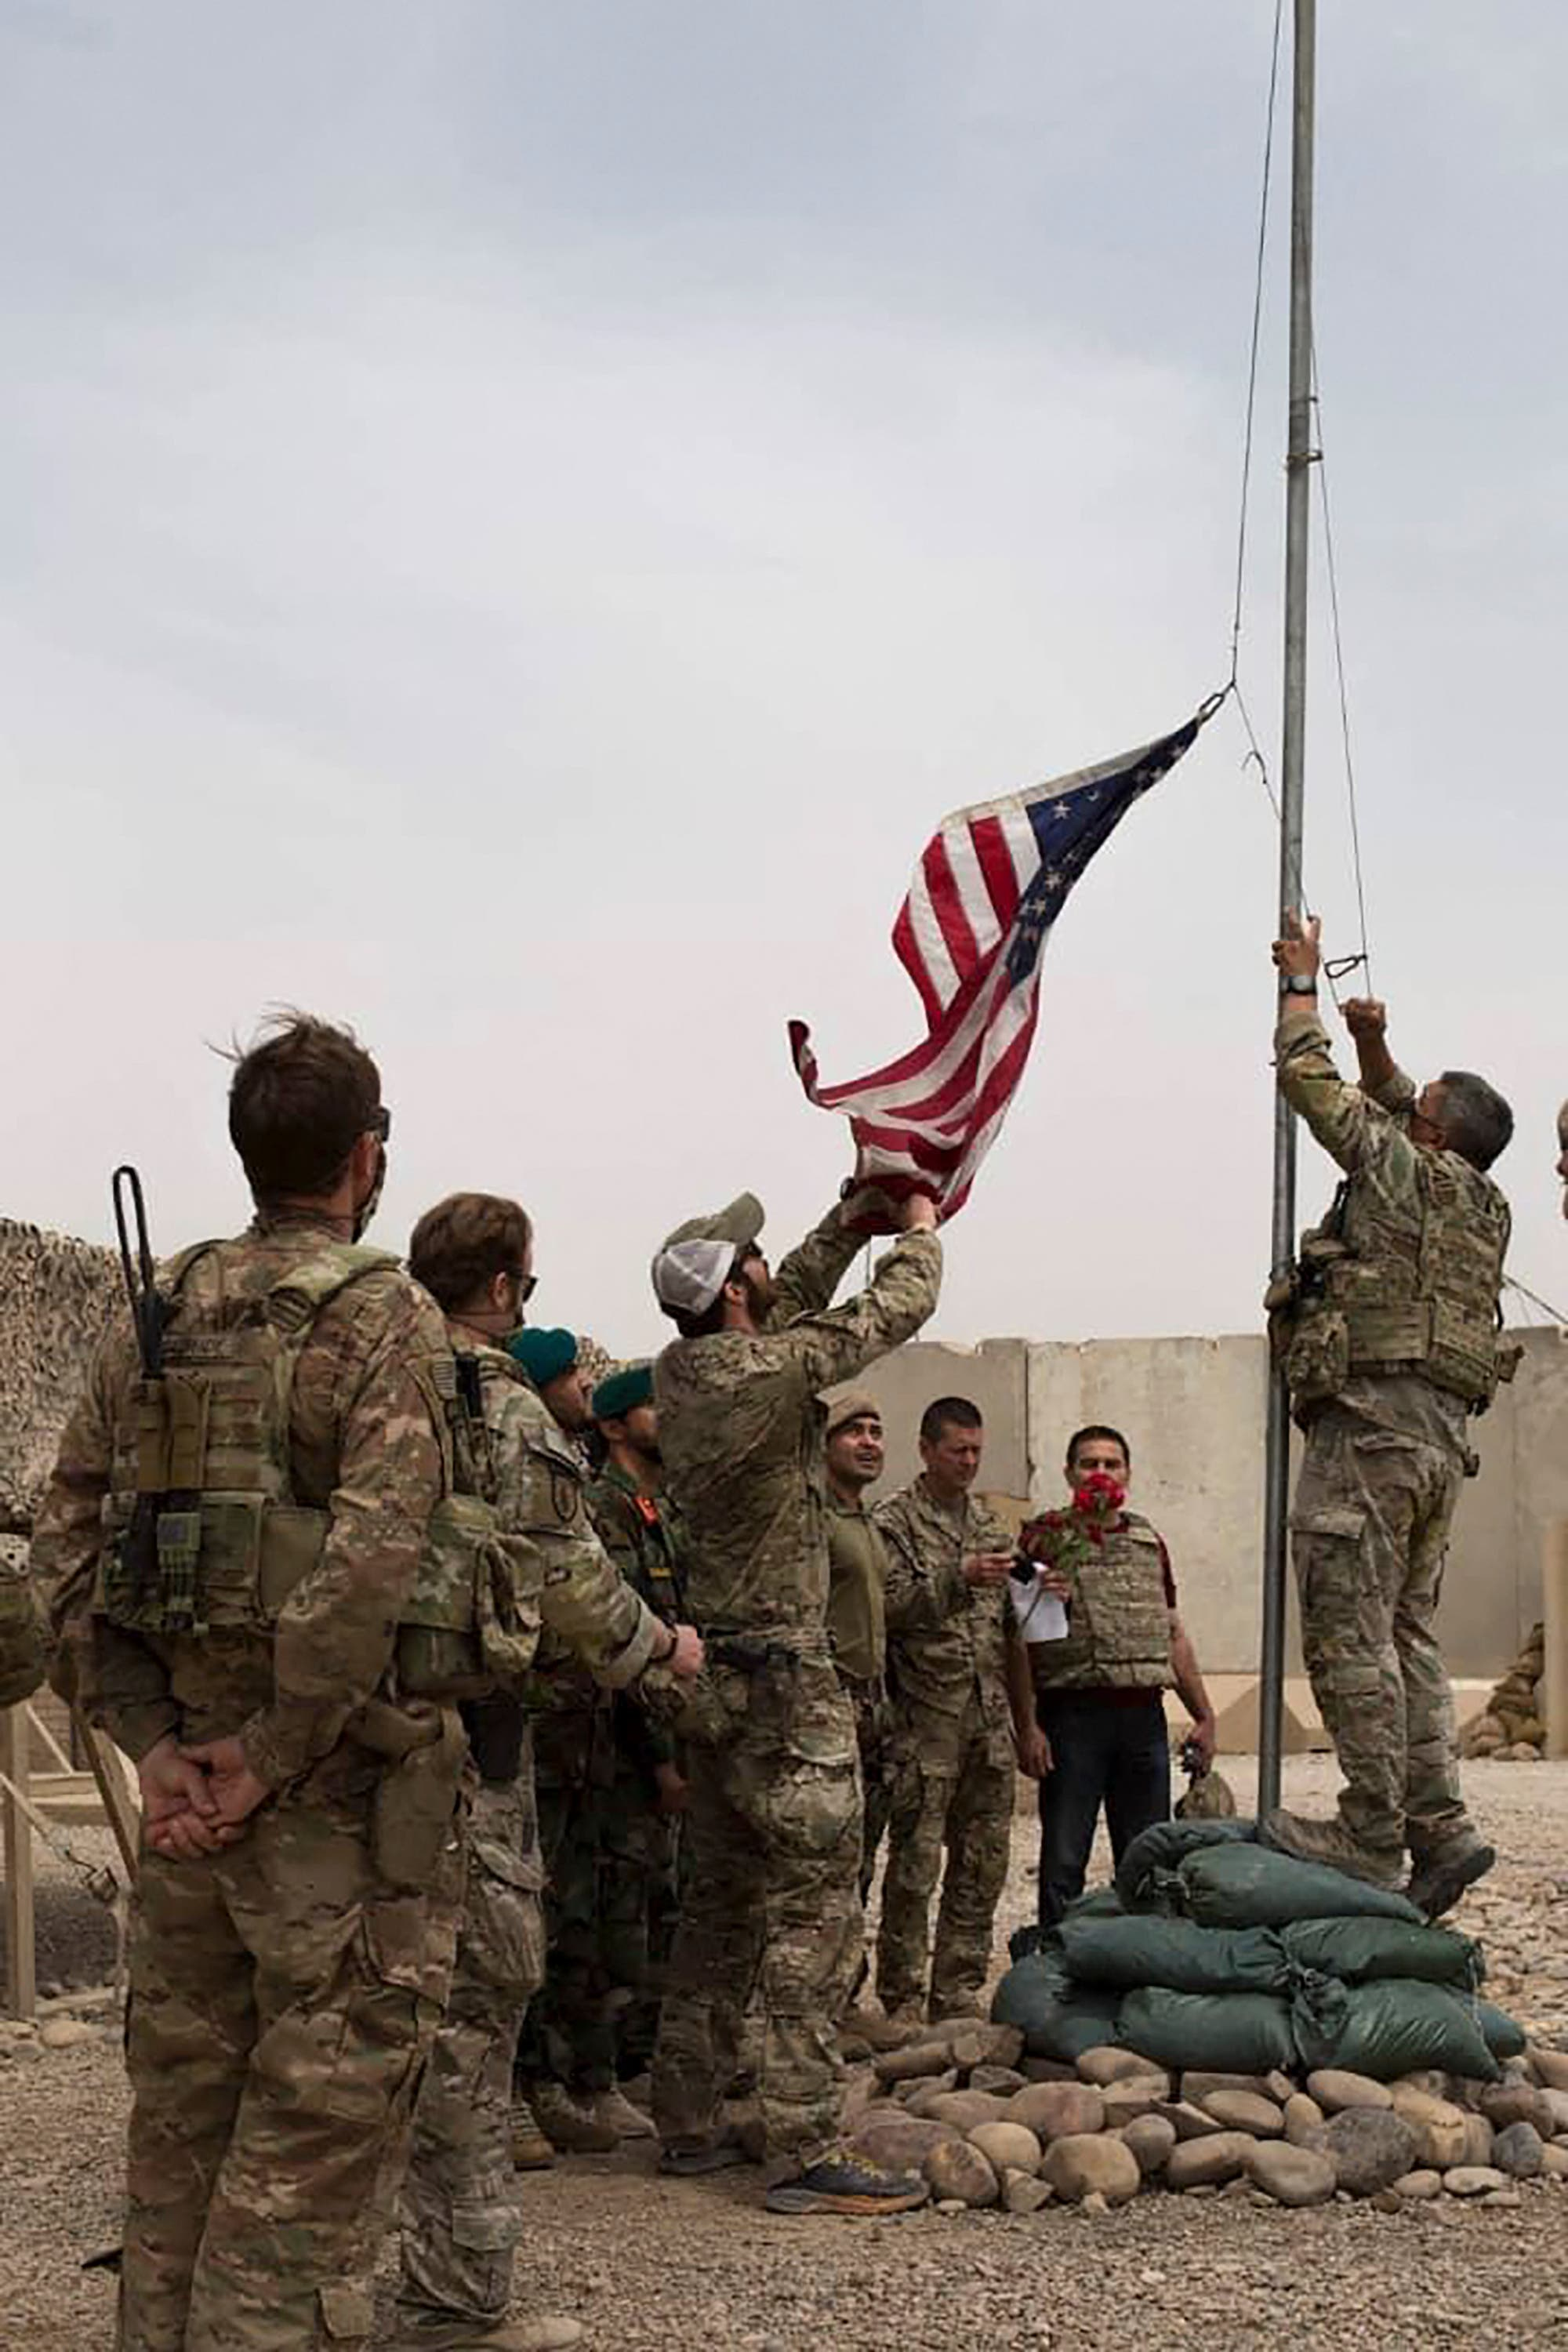 US soldiers lowering the US national flag during a handover ceremony to the Afghan National Army (ANA) army 215 Maiwand corps at Antonik camp in Helmand province. (File photo)